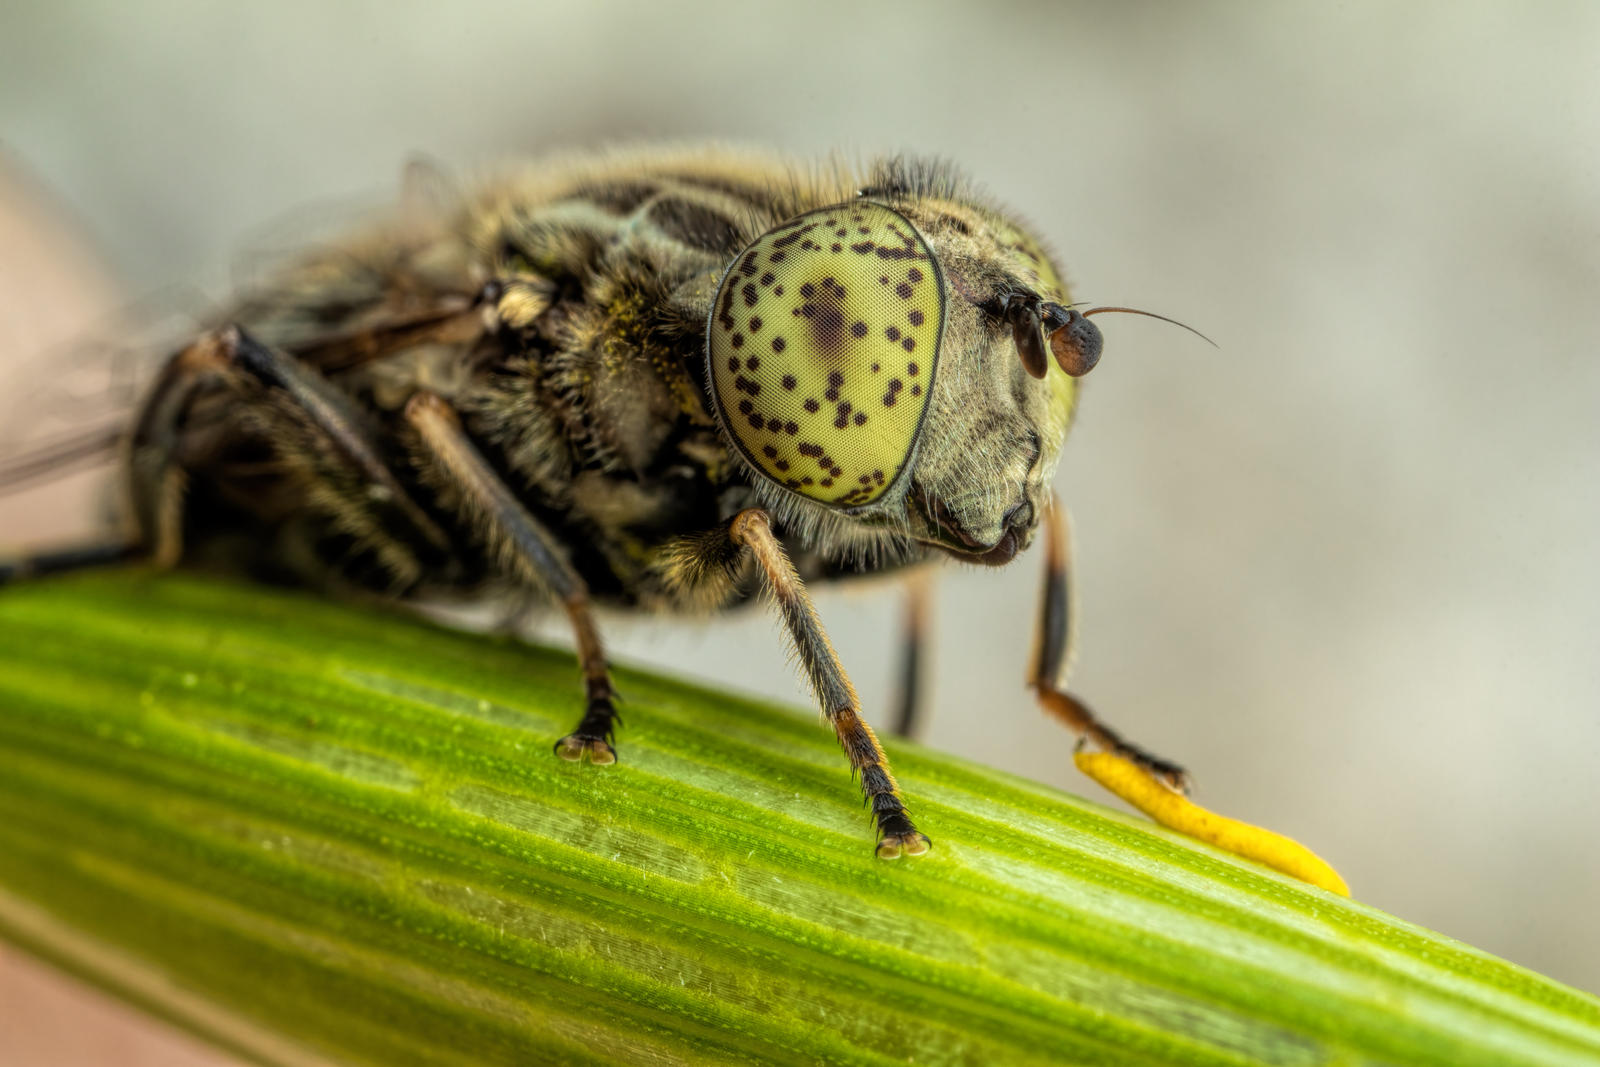 Female Spotted Eye Drone